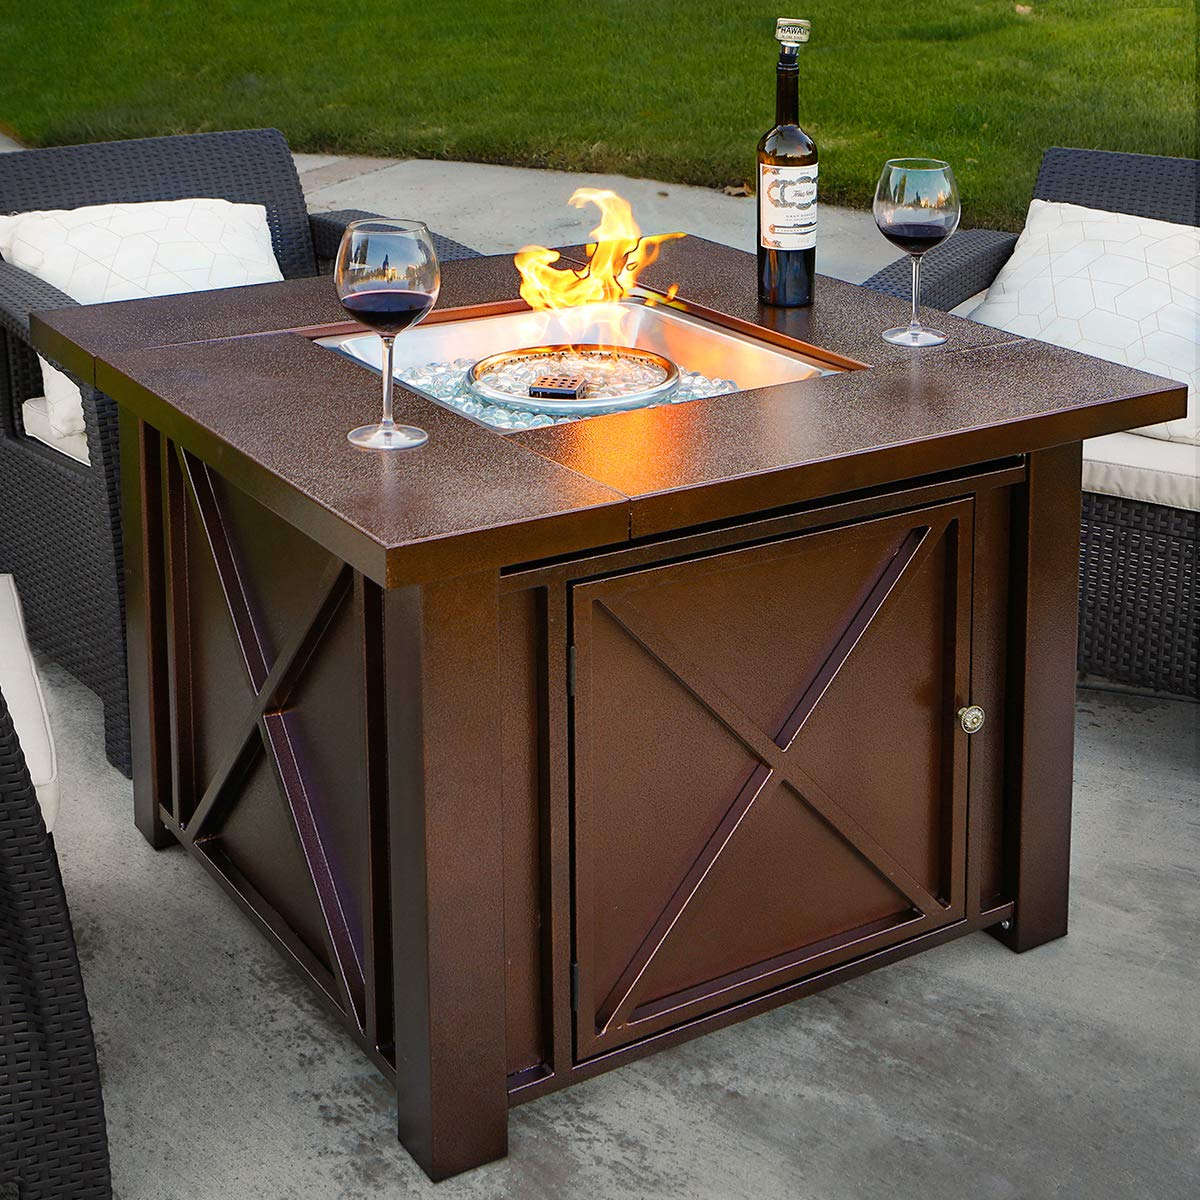 XtremepowerUS Premium Outdoor Patio Heaters LPG Propane Fire Pit Table Adjustable Flame Hammered Bronze Steel Finish by XtremepowerUS